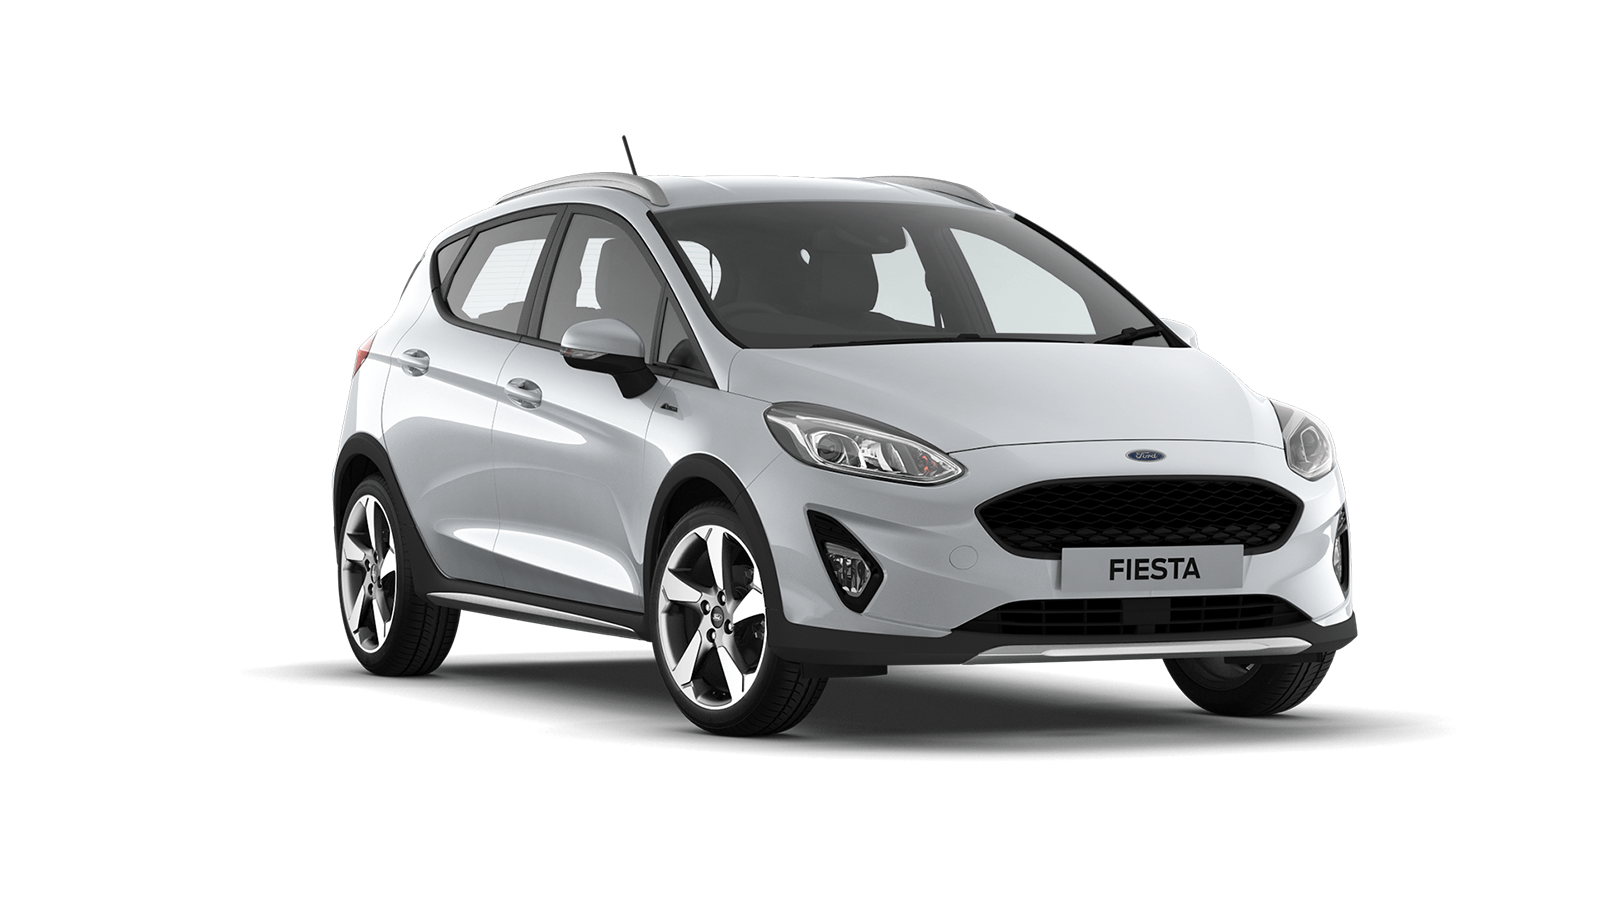 Ford Fiesta Active X 1.5 TDCi 120PS at Browne & Day